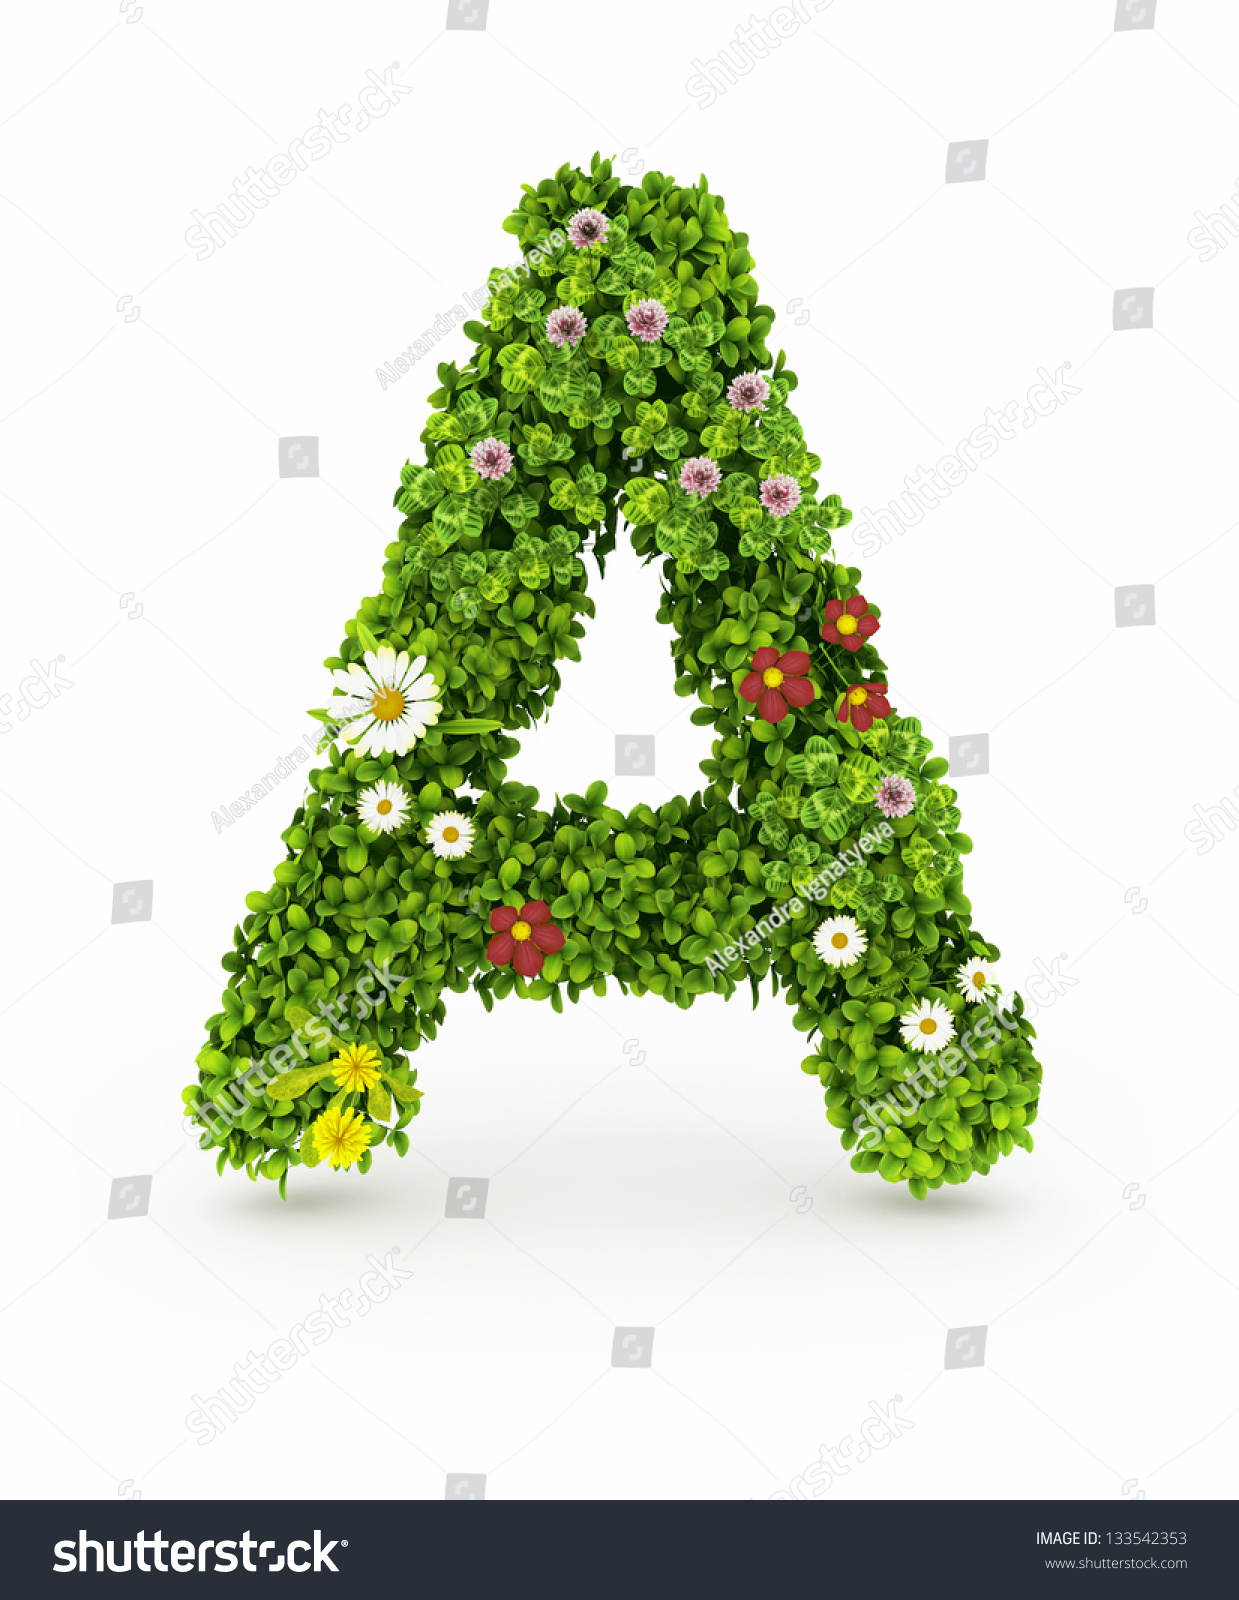 very nice floral alphabet.letters made of flowers and grass fotka, Beautiful flower